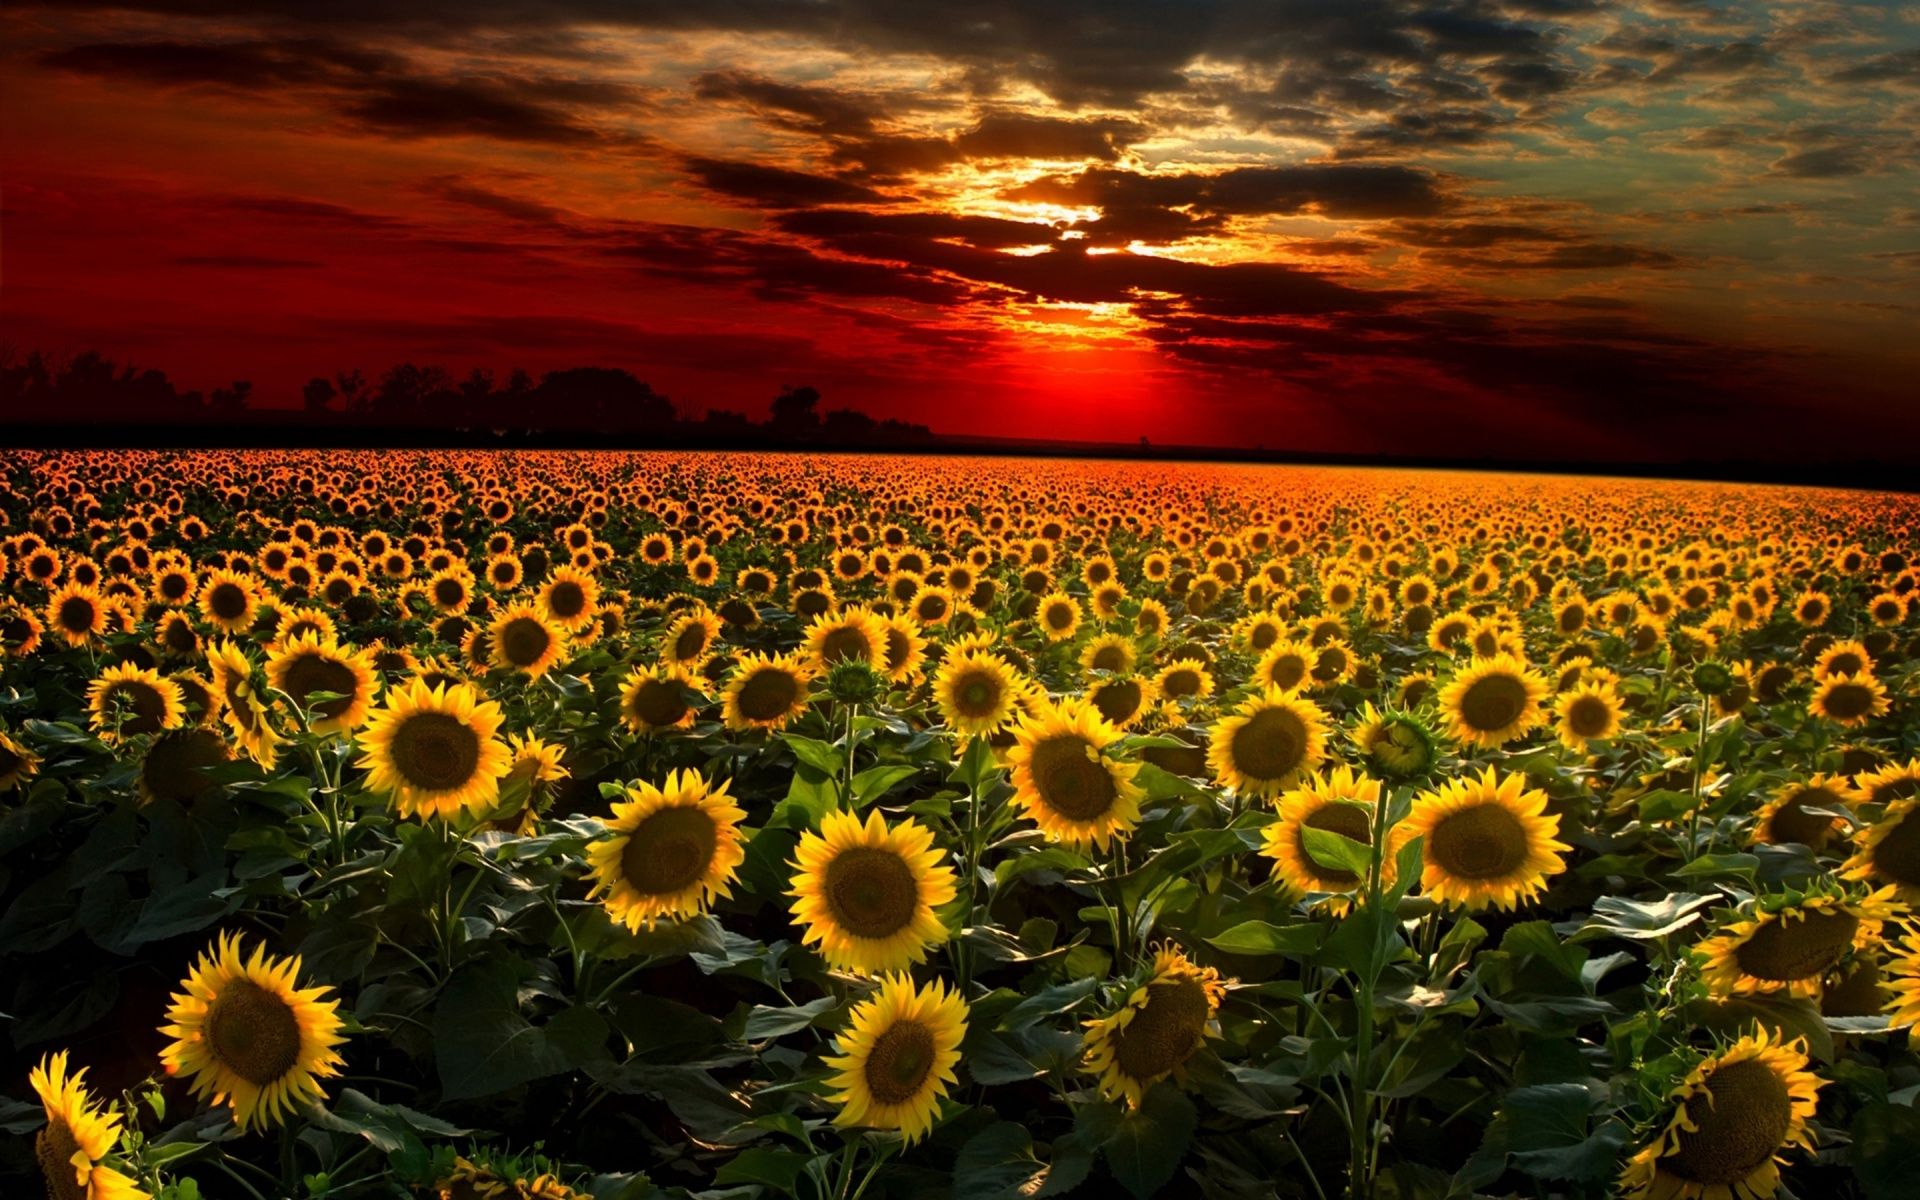 sunflowers and sunsets.jpg